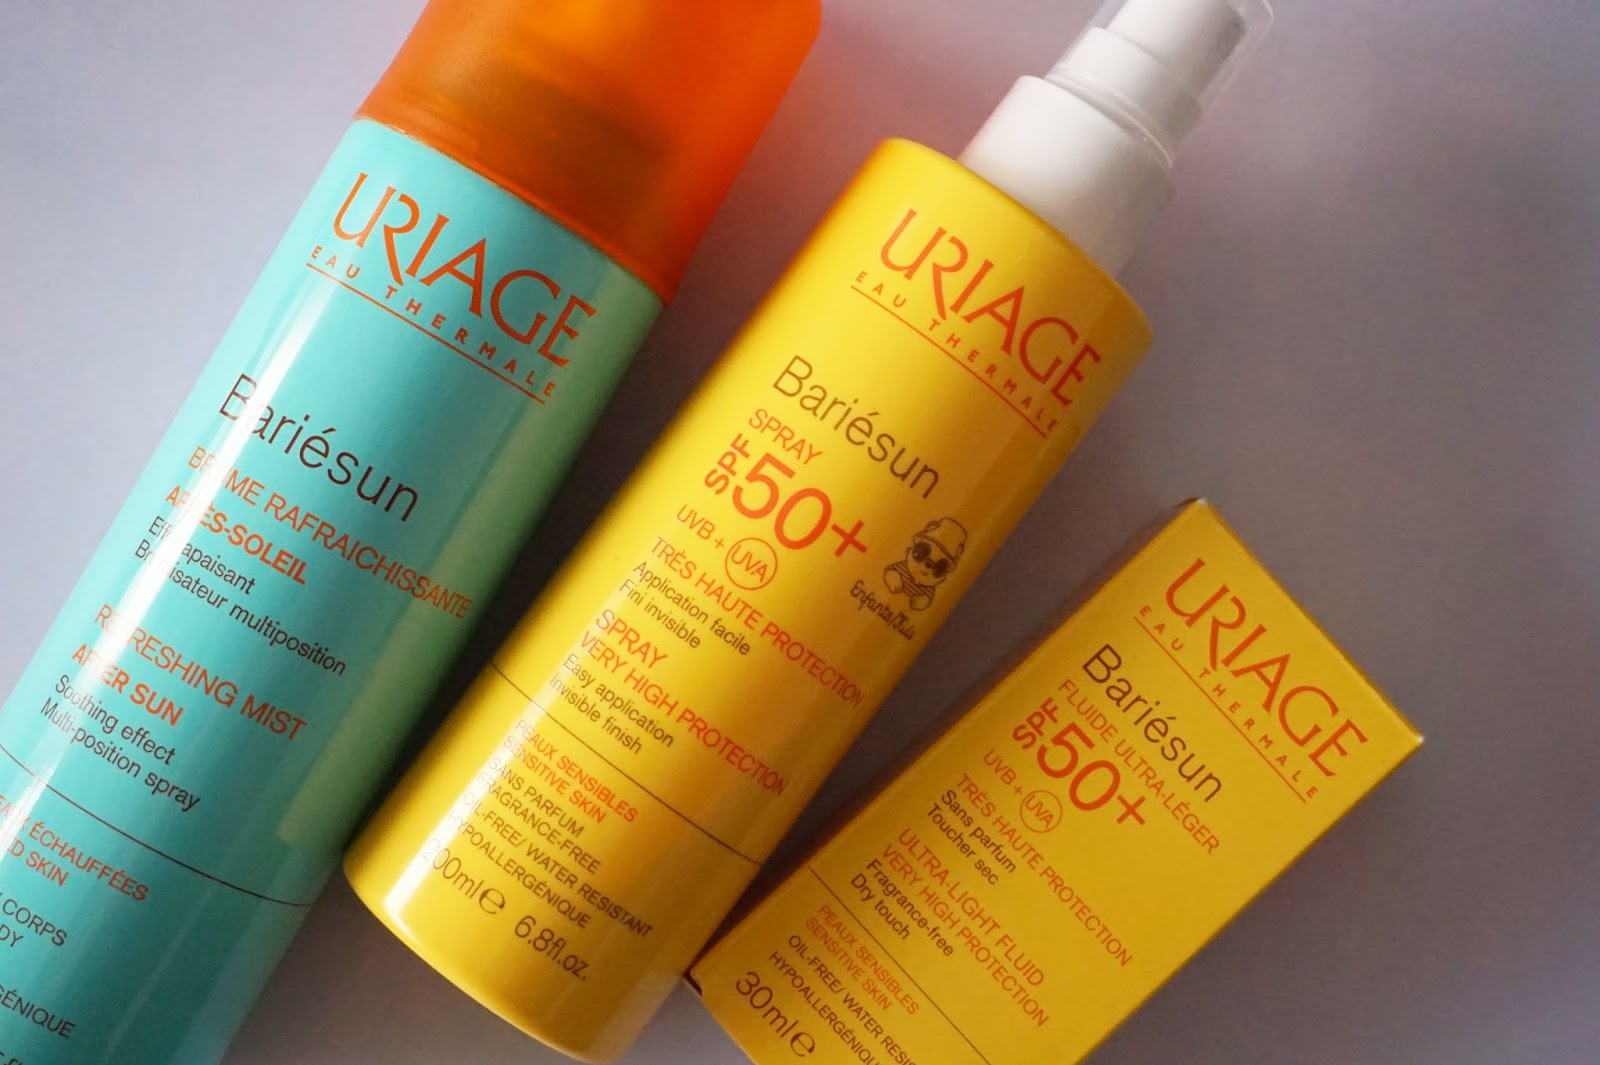 uriage bariesun after sun spray fluid